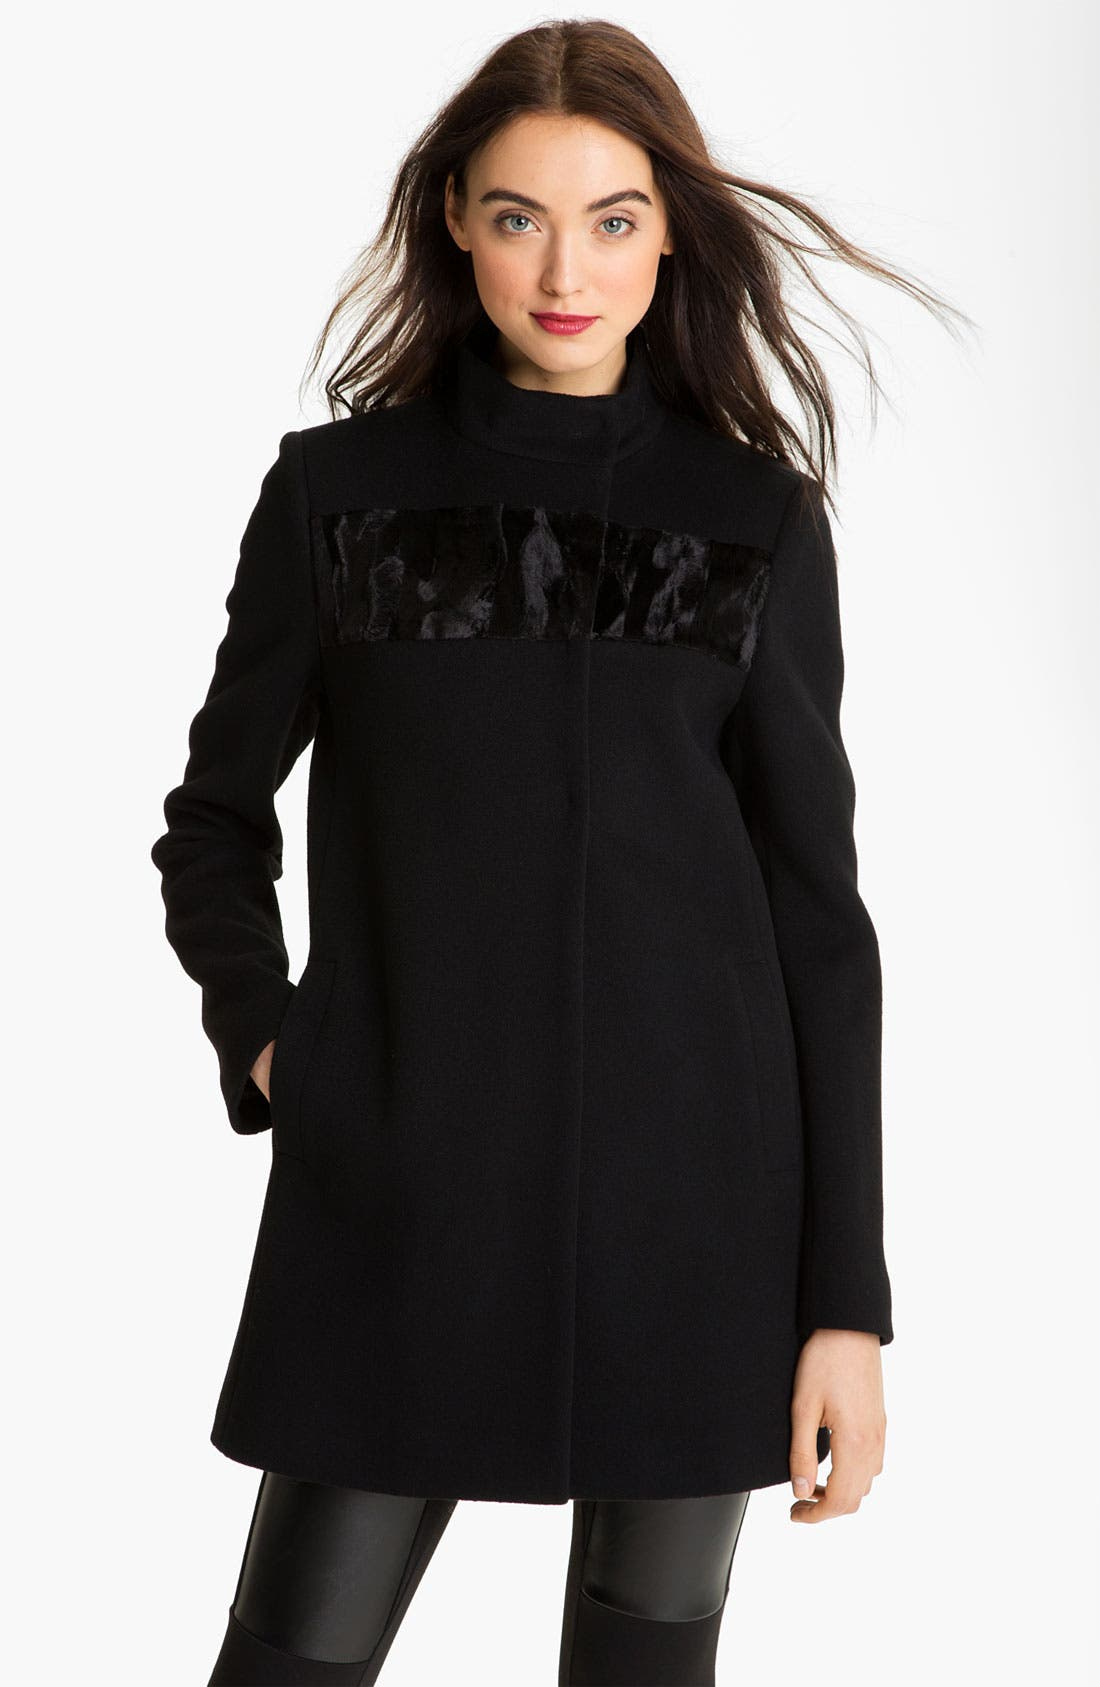 Alternate Image 1 Selected - Elie Tahari Wool Coat with Faux Fur Detail (Petite) (Online Exclusive)